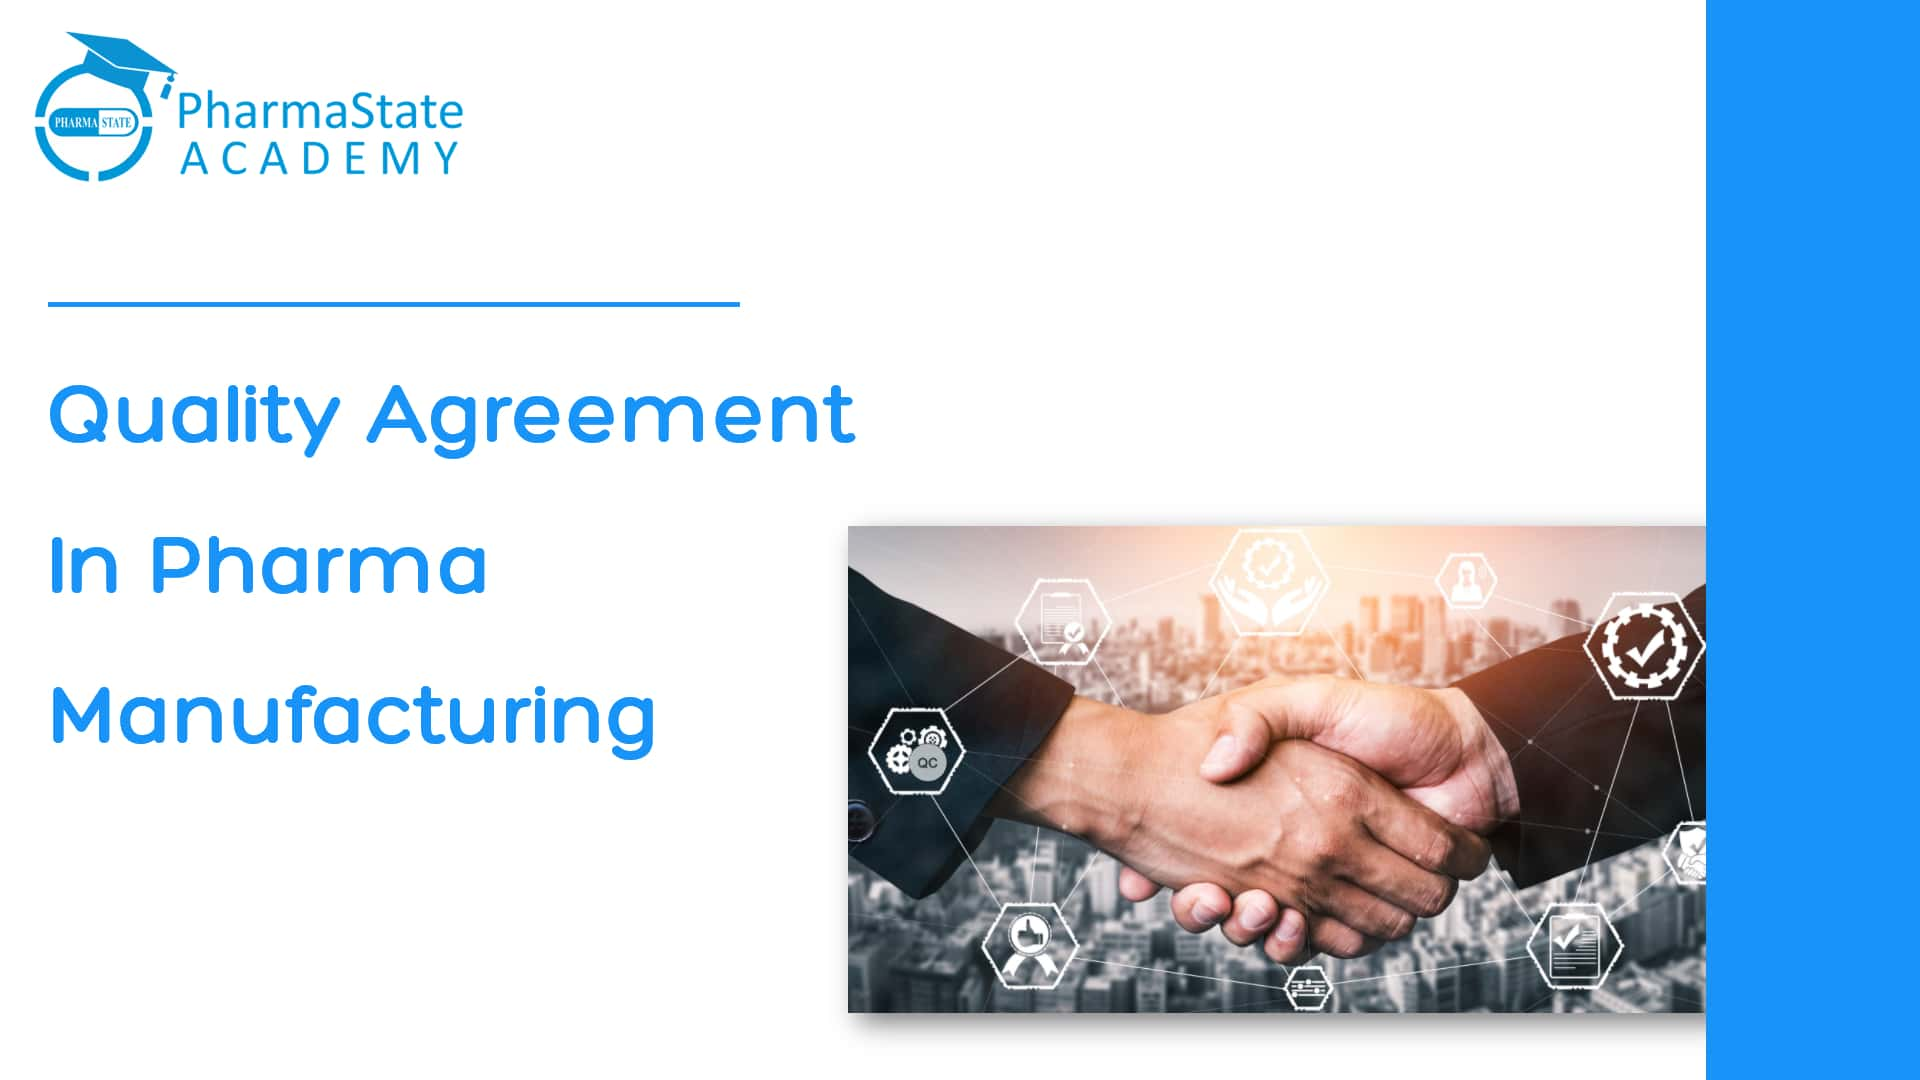 Quality Agreement in Pharma Manufacturing